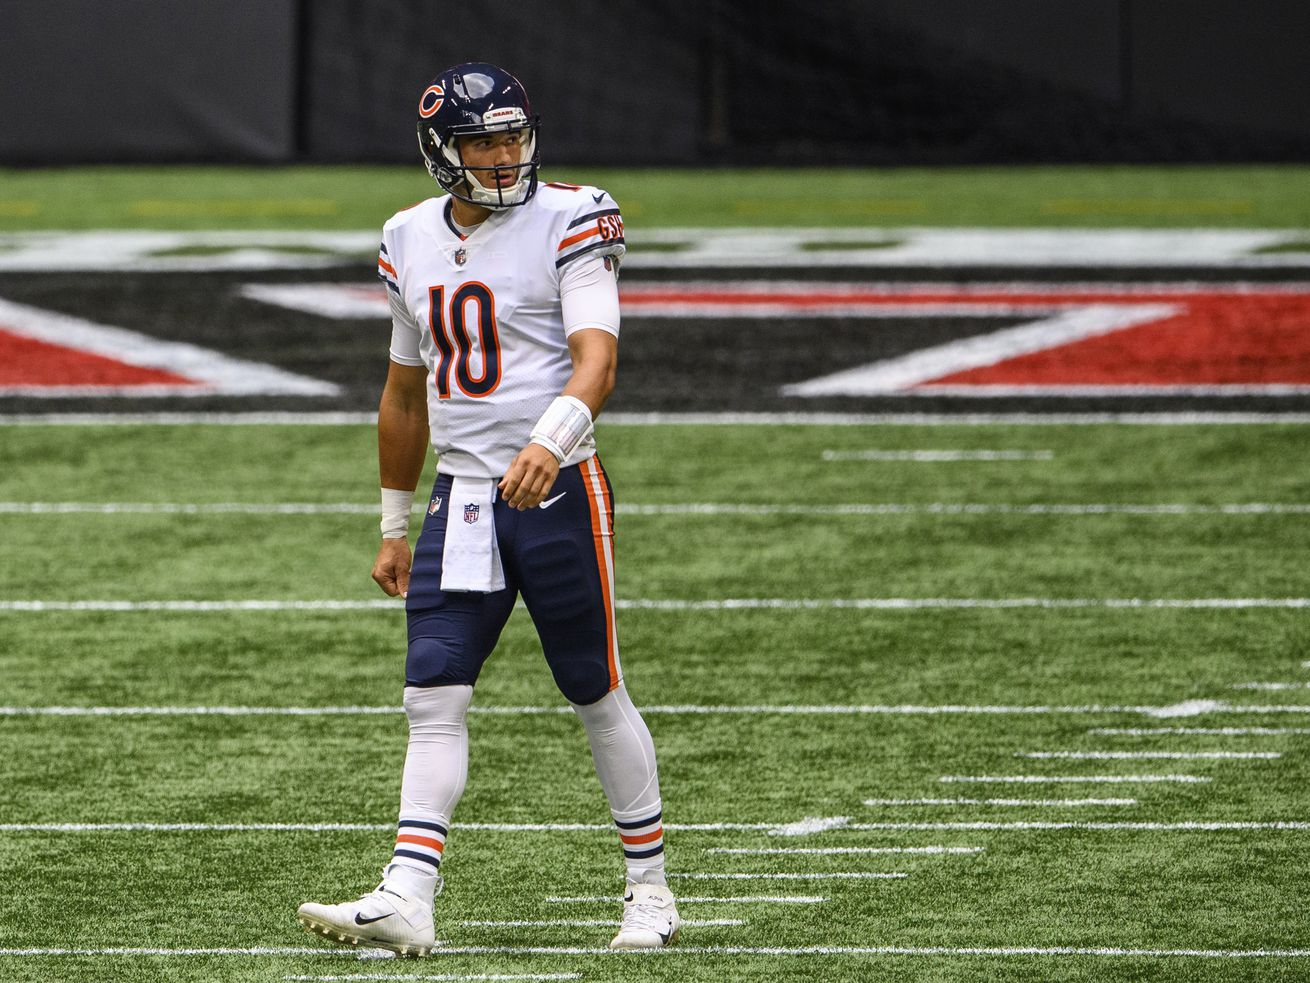 Bears' Mitch Trubisky will be defined by how he handles benching